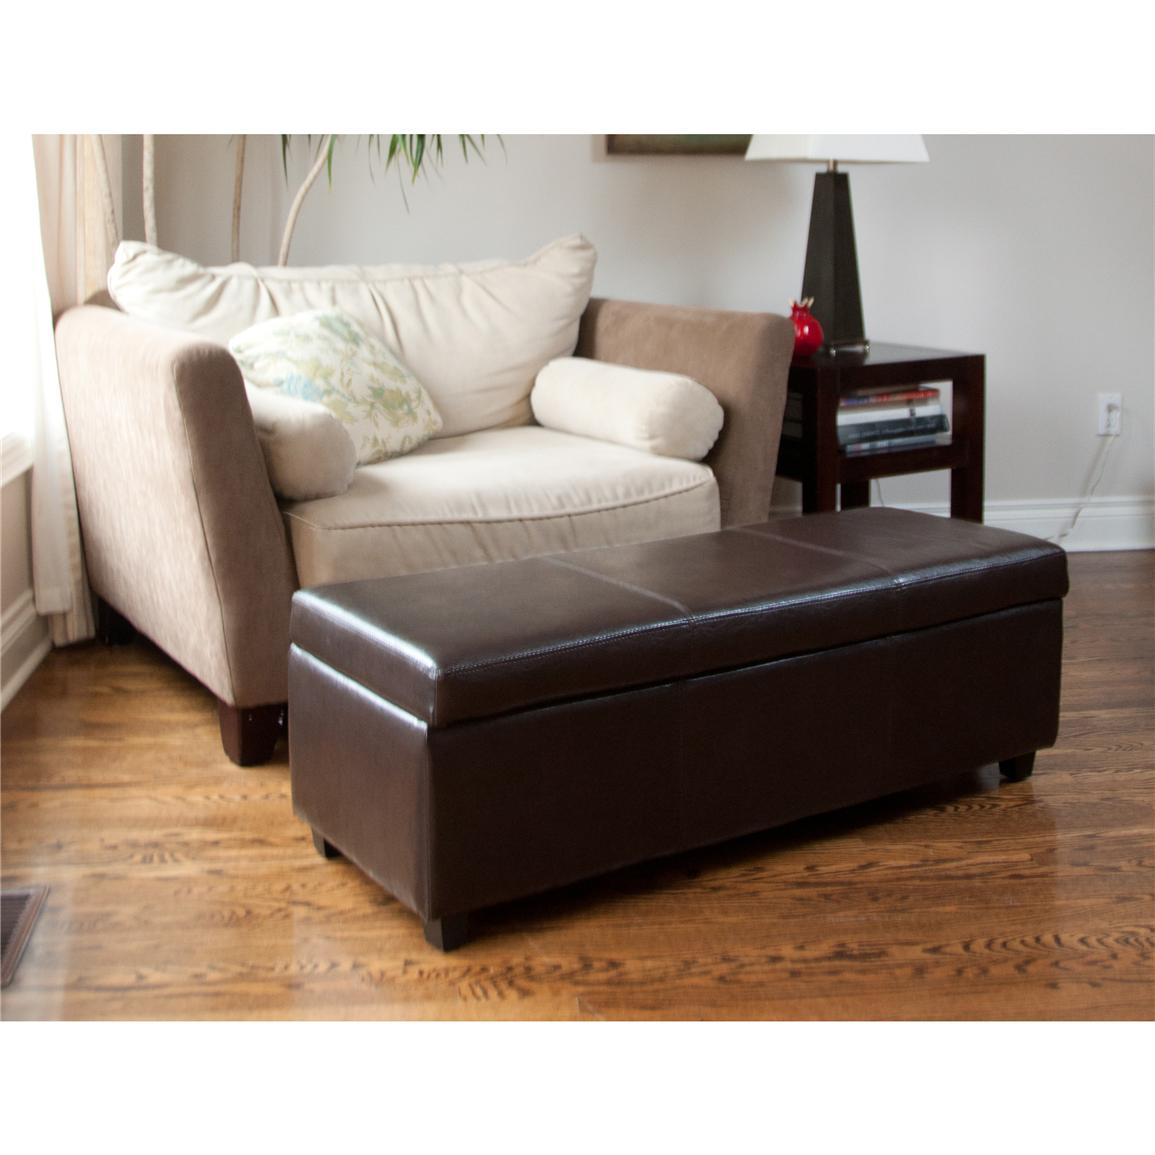 living room ottoman with storage avalon large rectangular storage ottoman brown 21156